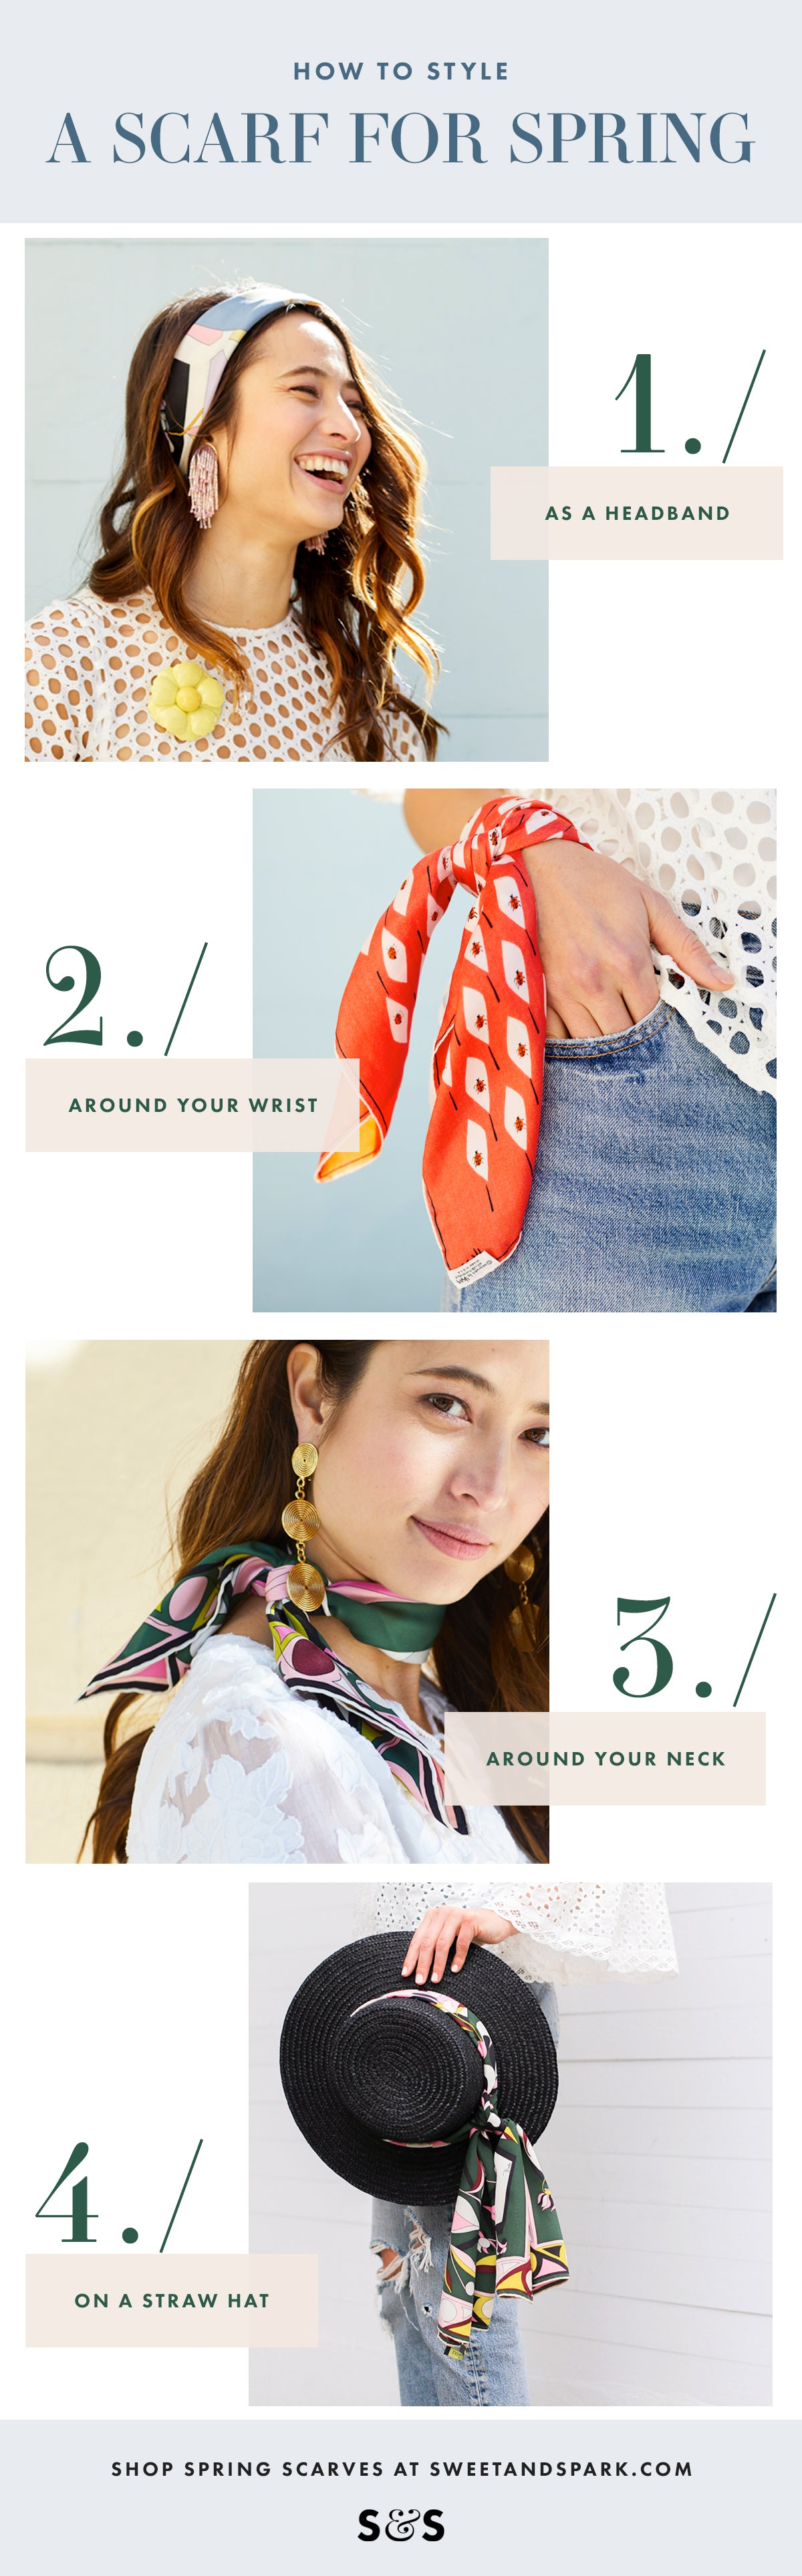 How To Style A Vintage Scarf For Spring